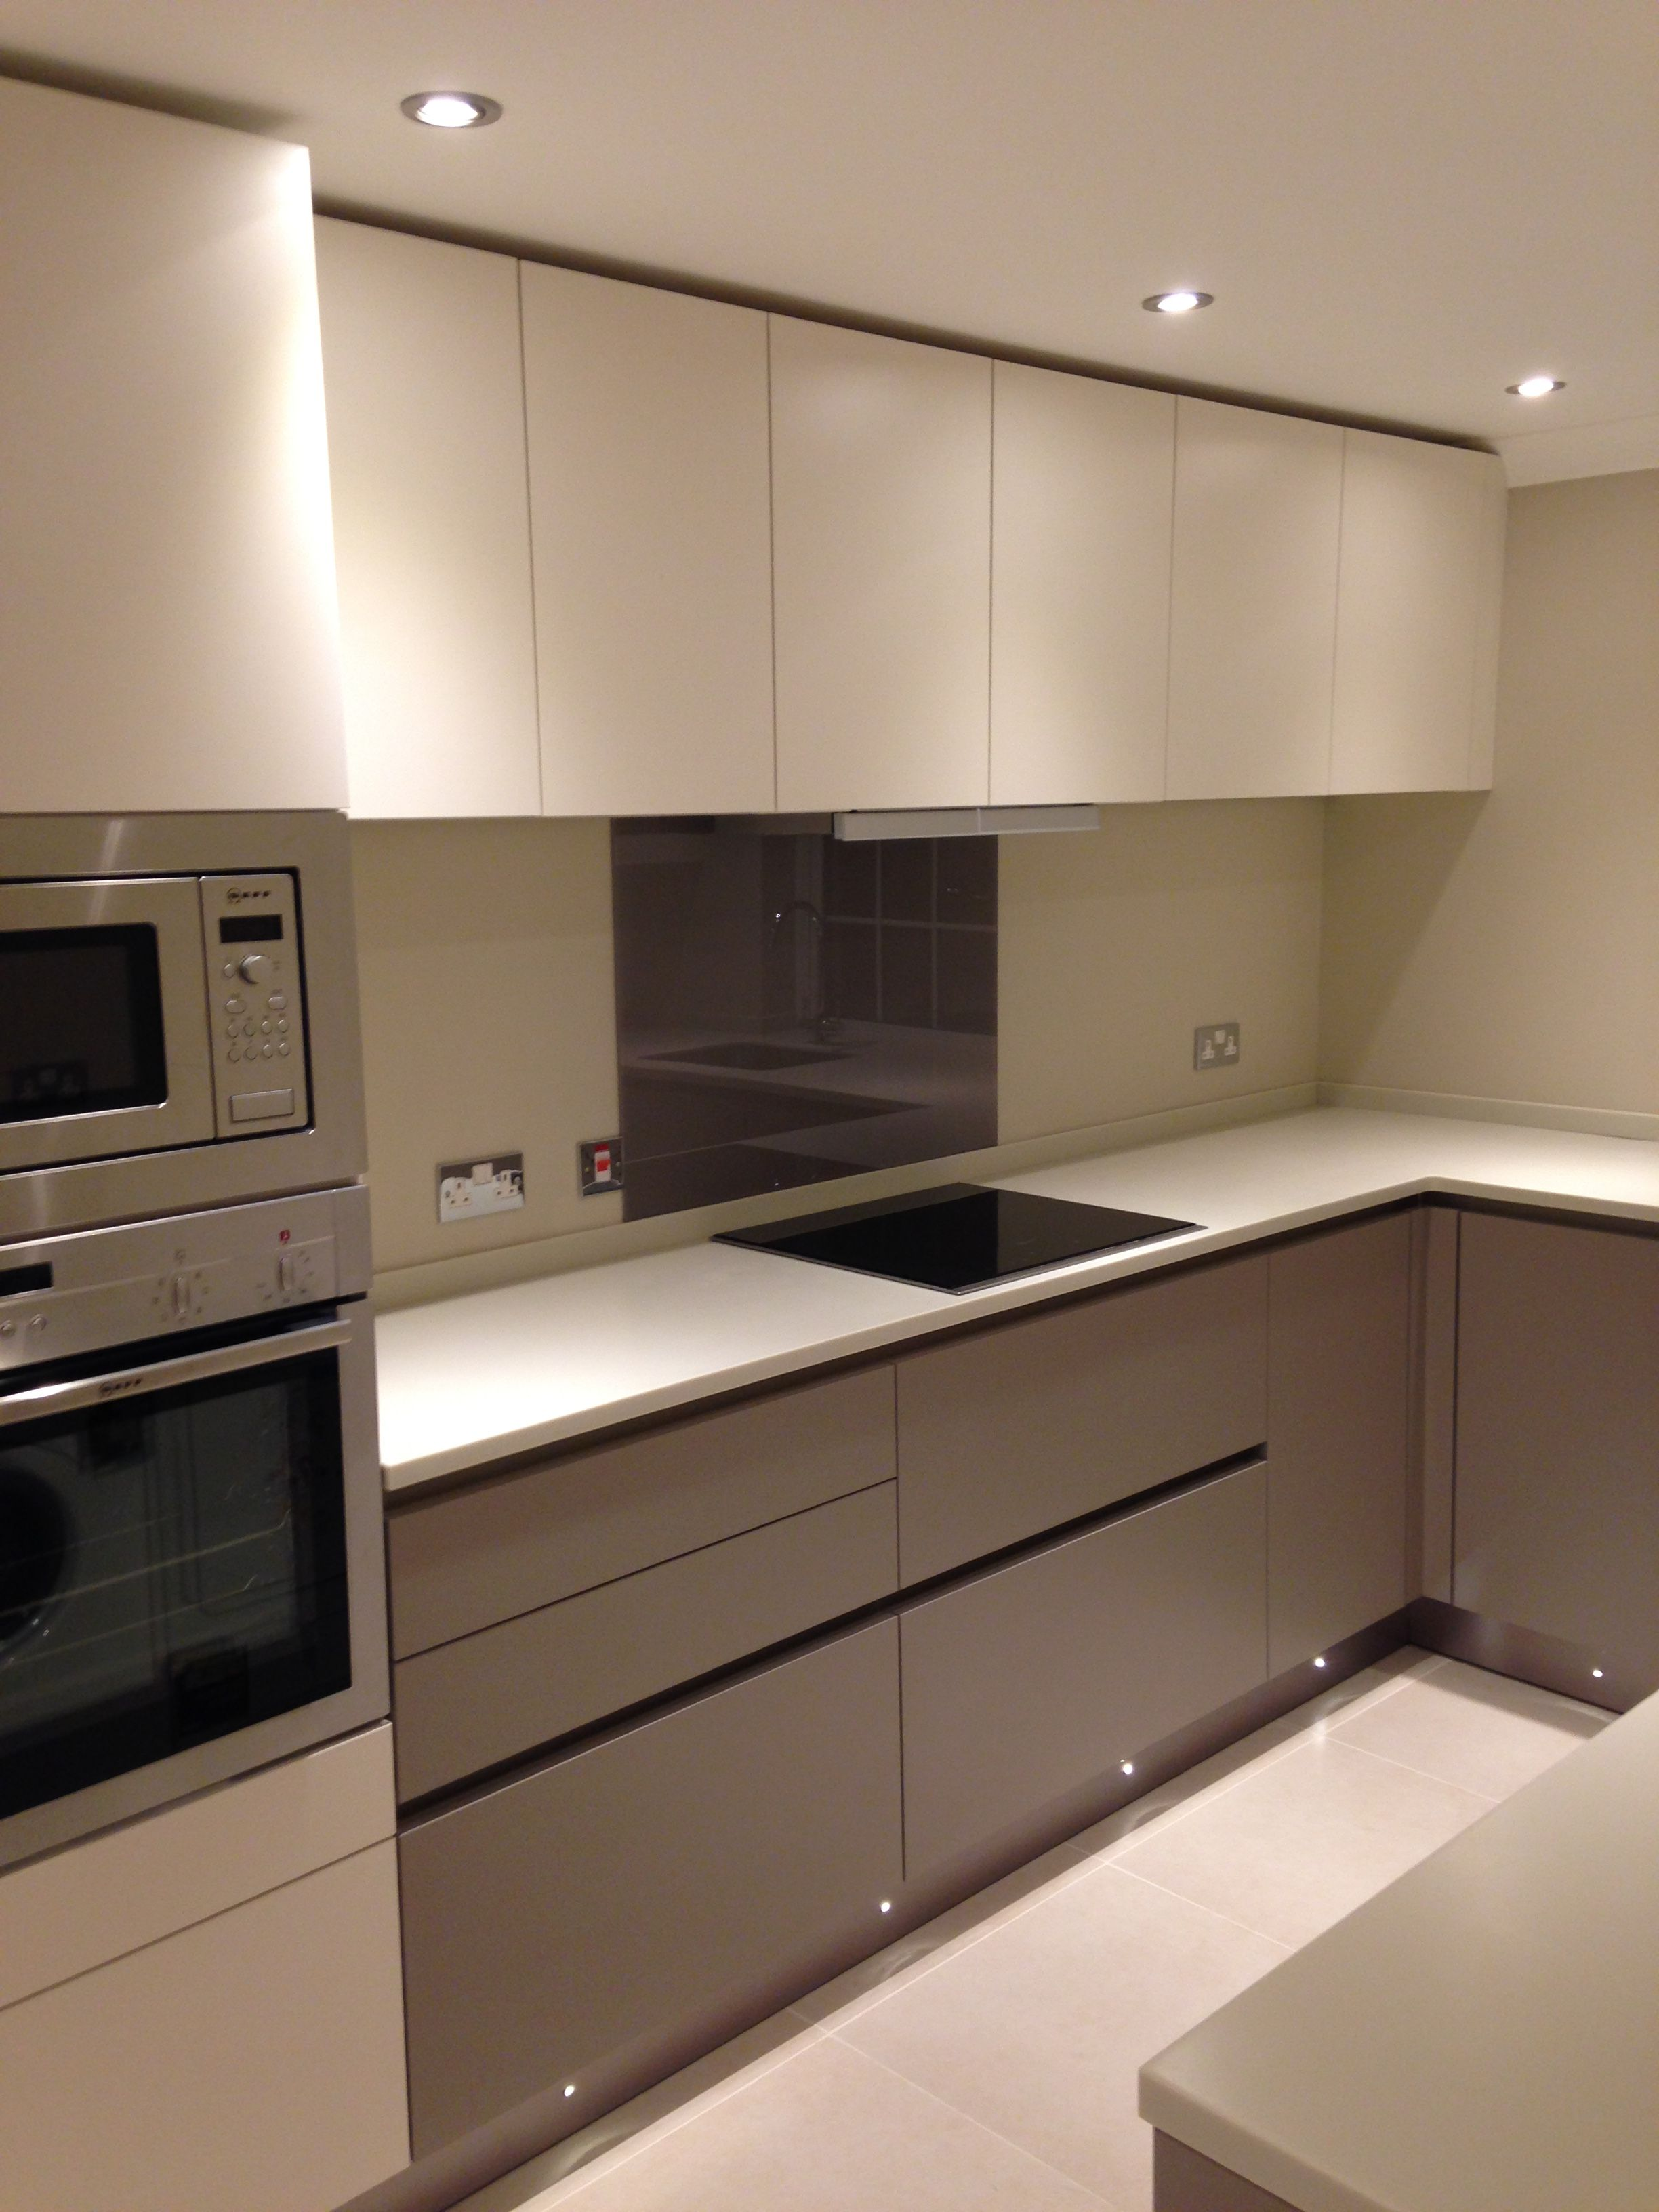 Bespoke, contemporary kitchen fitted as part of a modern